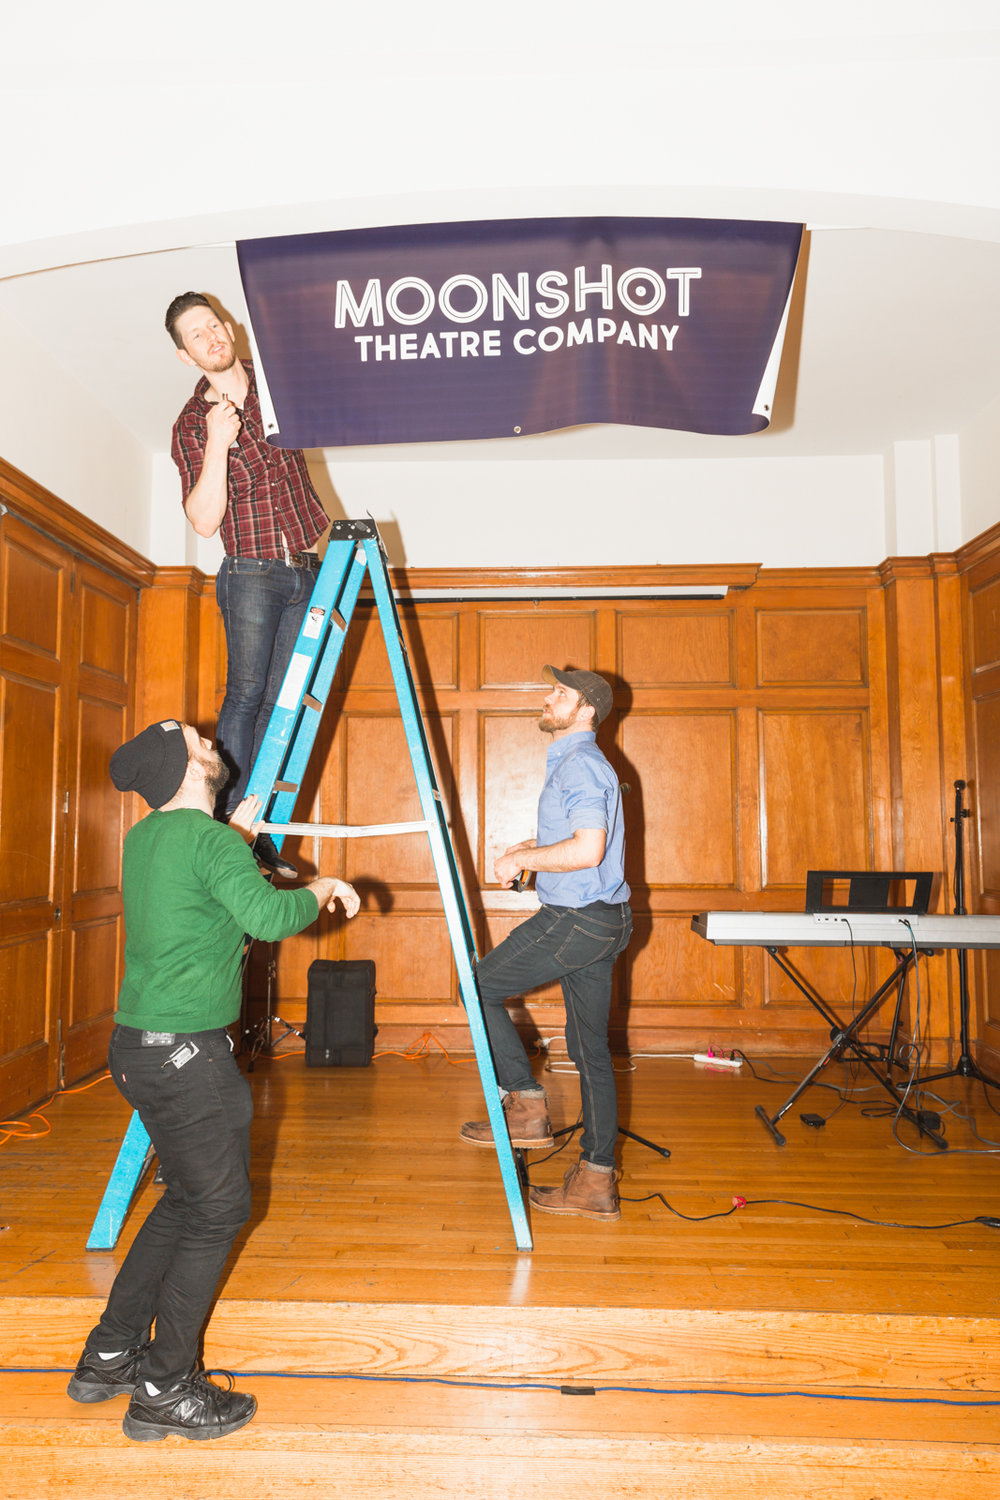 The unveiling of the new Moonshot banner. Special thanks to Chris Cornwell, Titus Tompkins and Sam de Roest for braving the ladder.